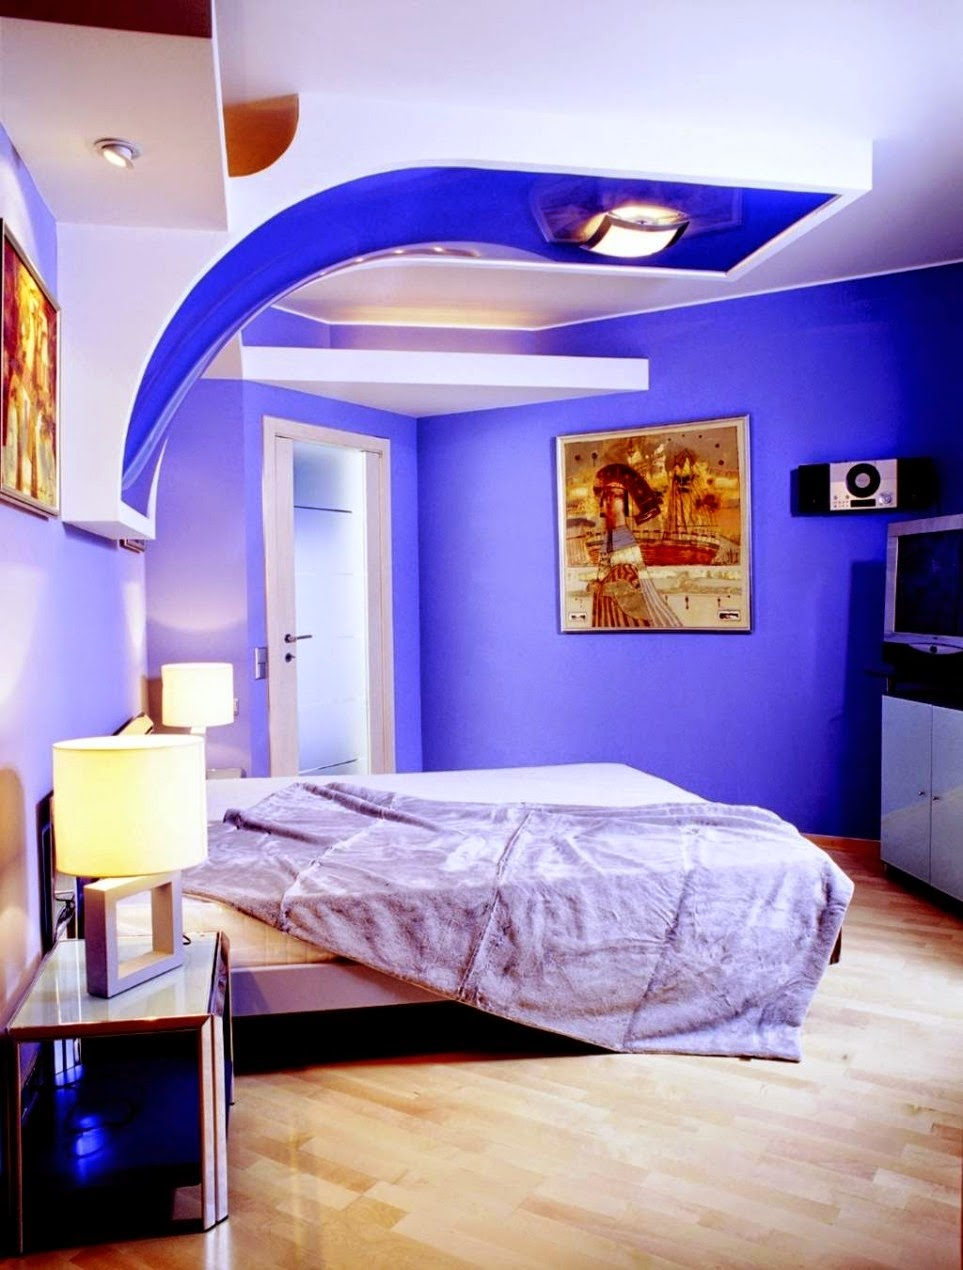 Interior home painting ideas for minimalis bedroom blue ...